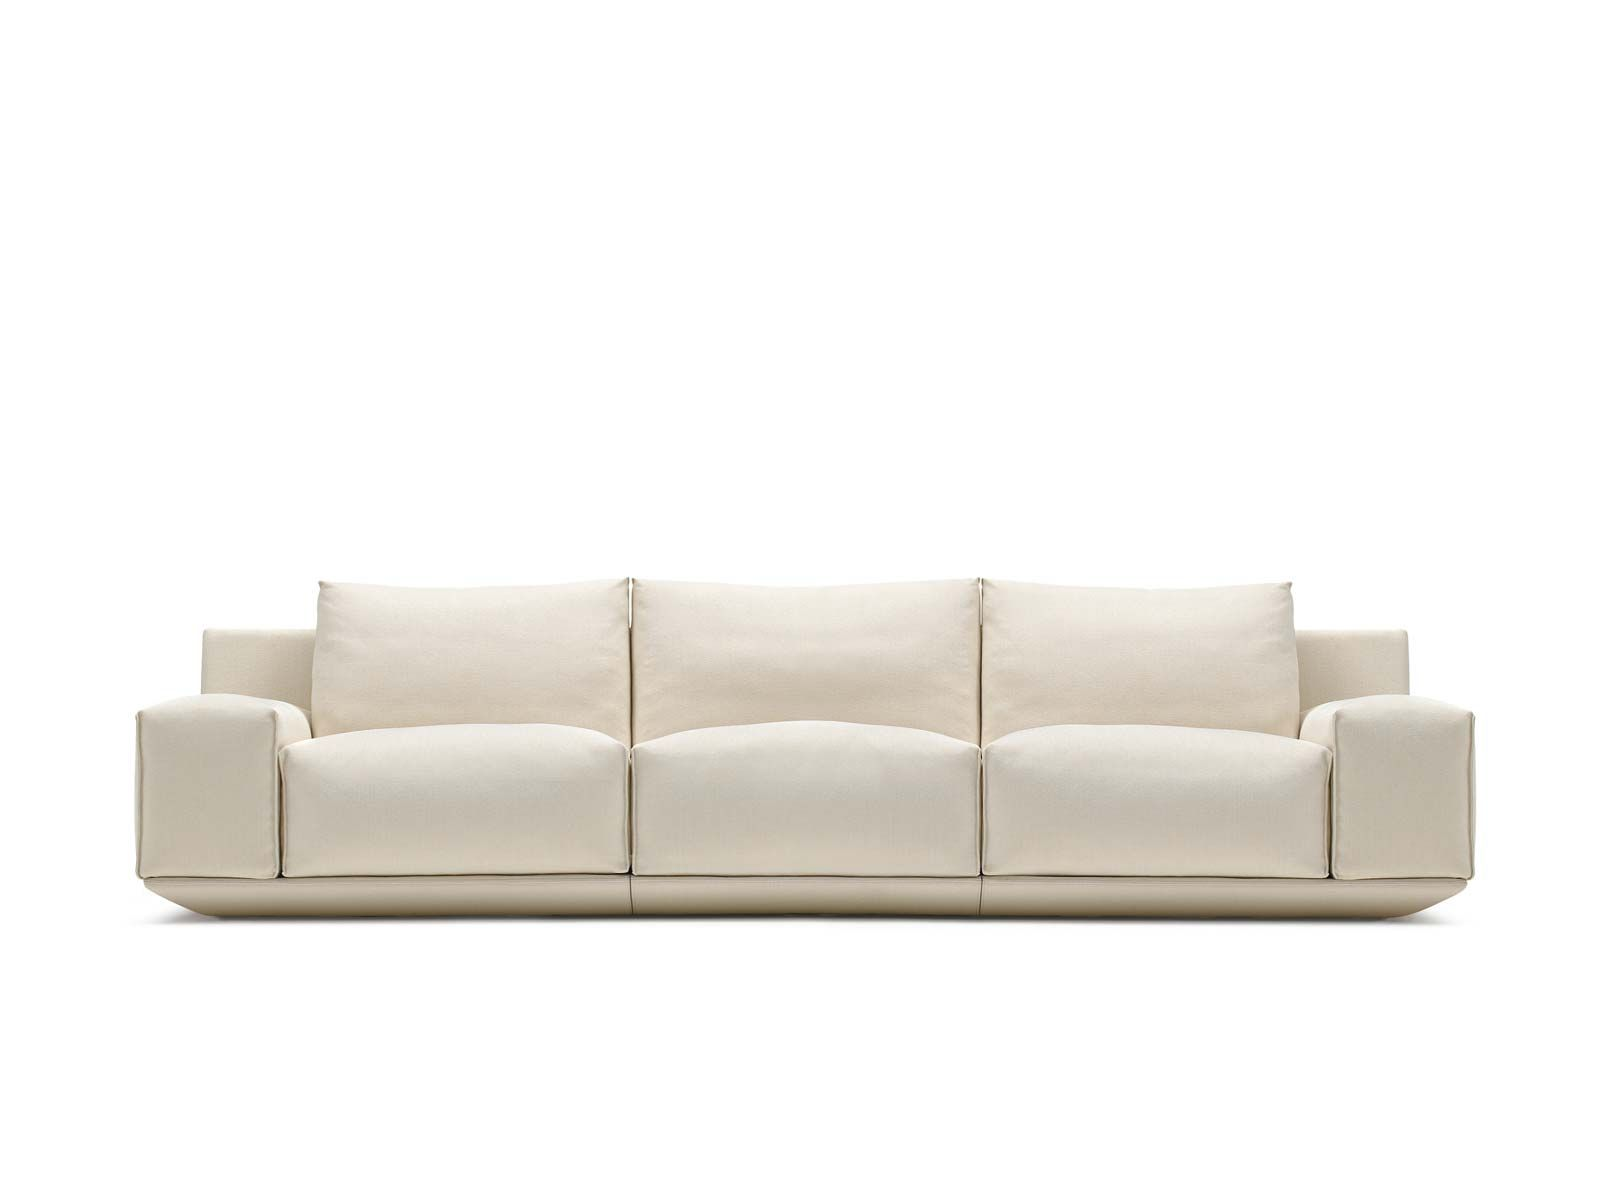 Musa Spa | Divani e poltrone | Sofas and armchairs - Wing | sofas ...